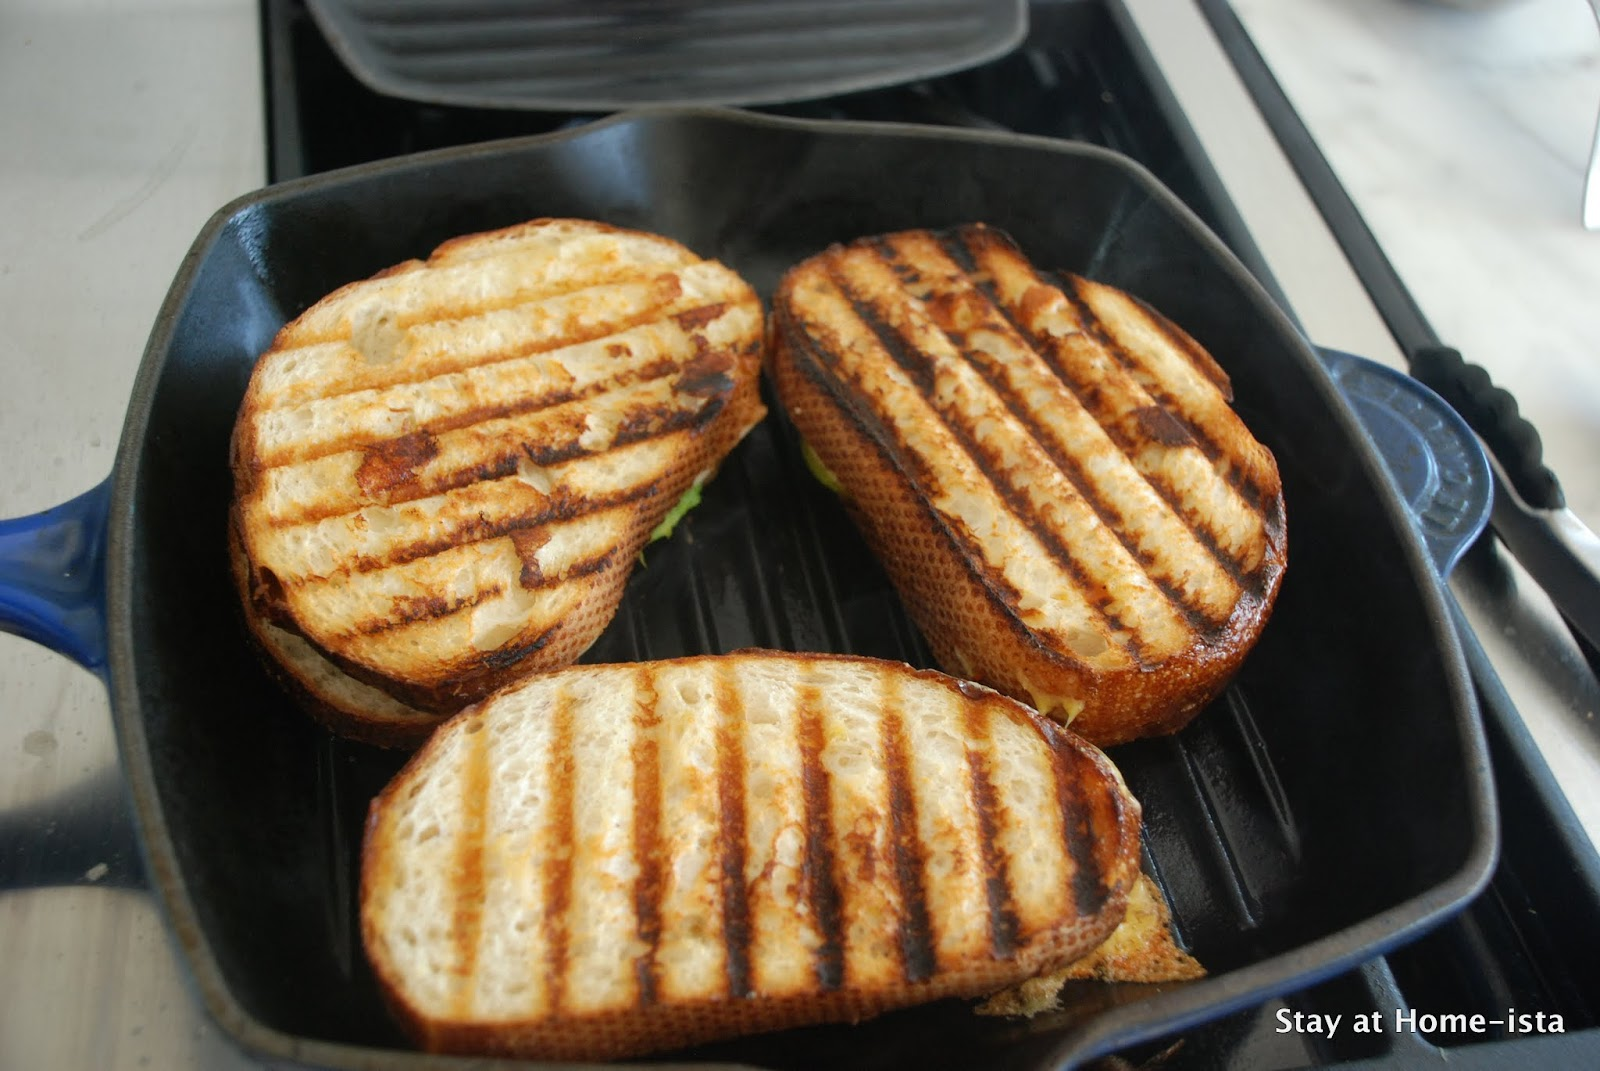 Stay At Home Ista Grilled Cheese Sandwich Party